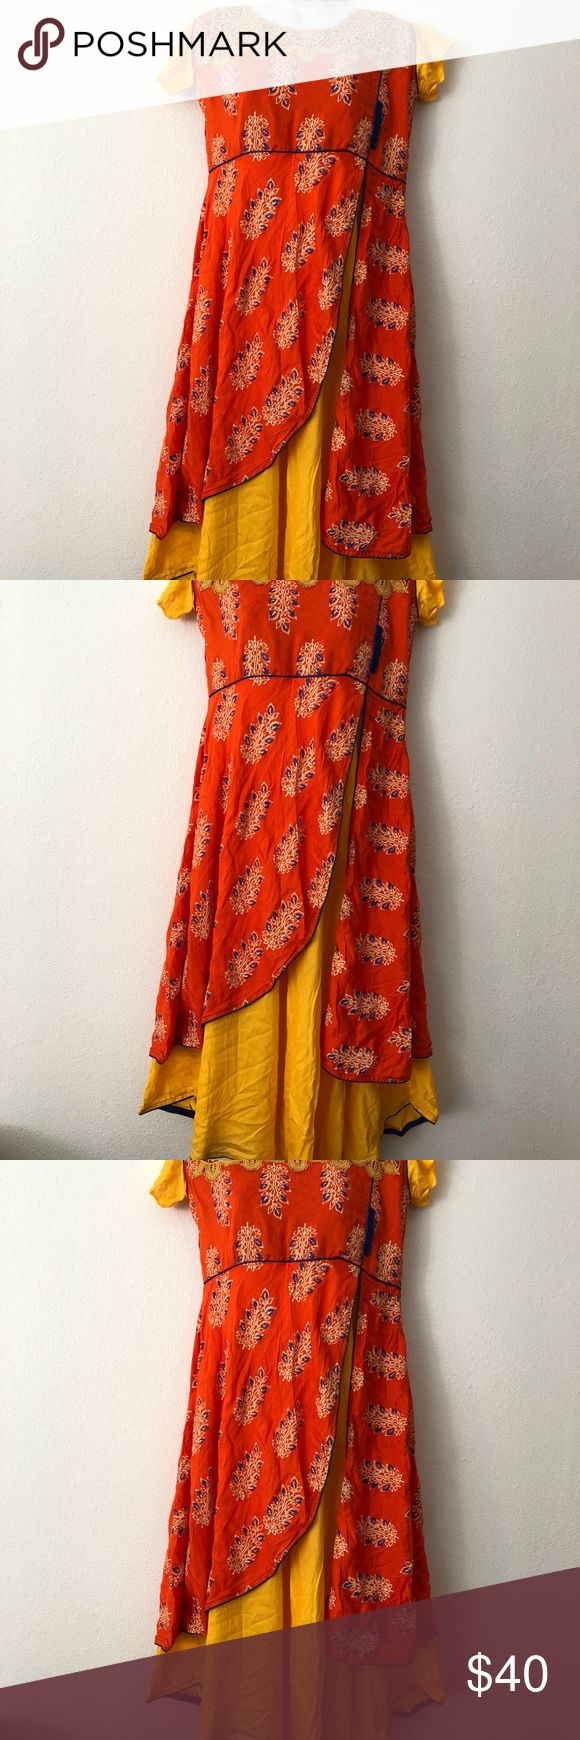 New kurti for sale Brand New boat neck kurti,  Orange and color layered kurti with blue piping around the edges and beautiful yellow color lace around the neck Tops Tunics